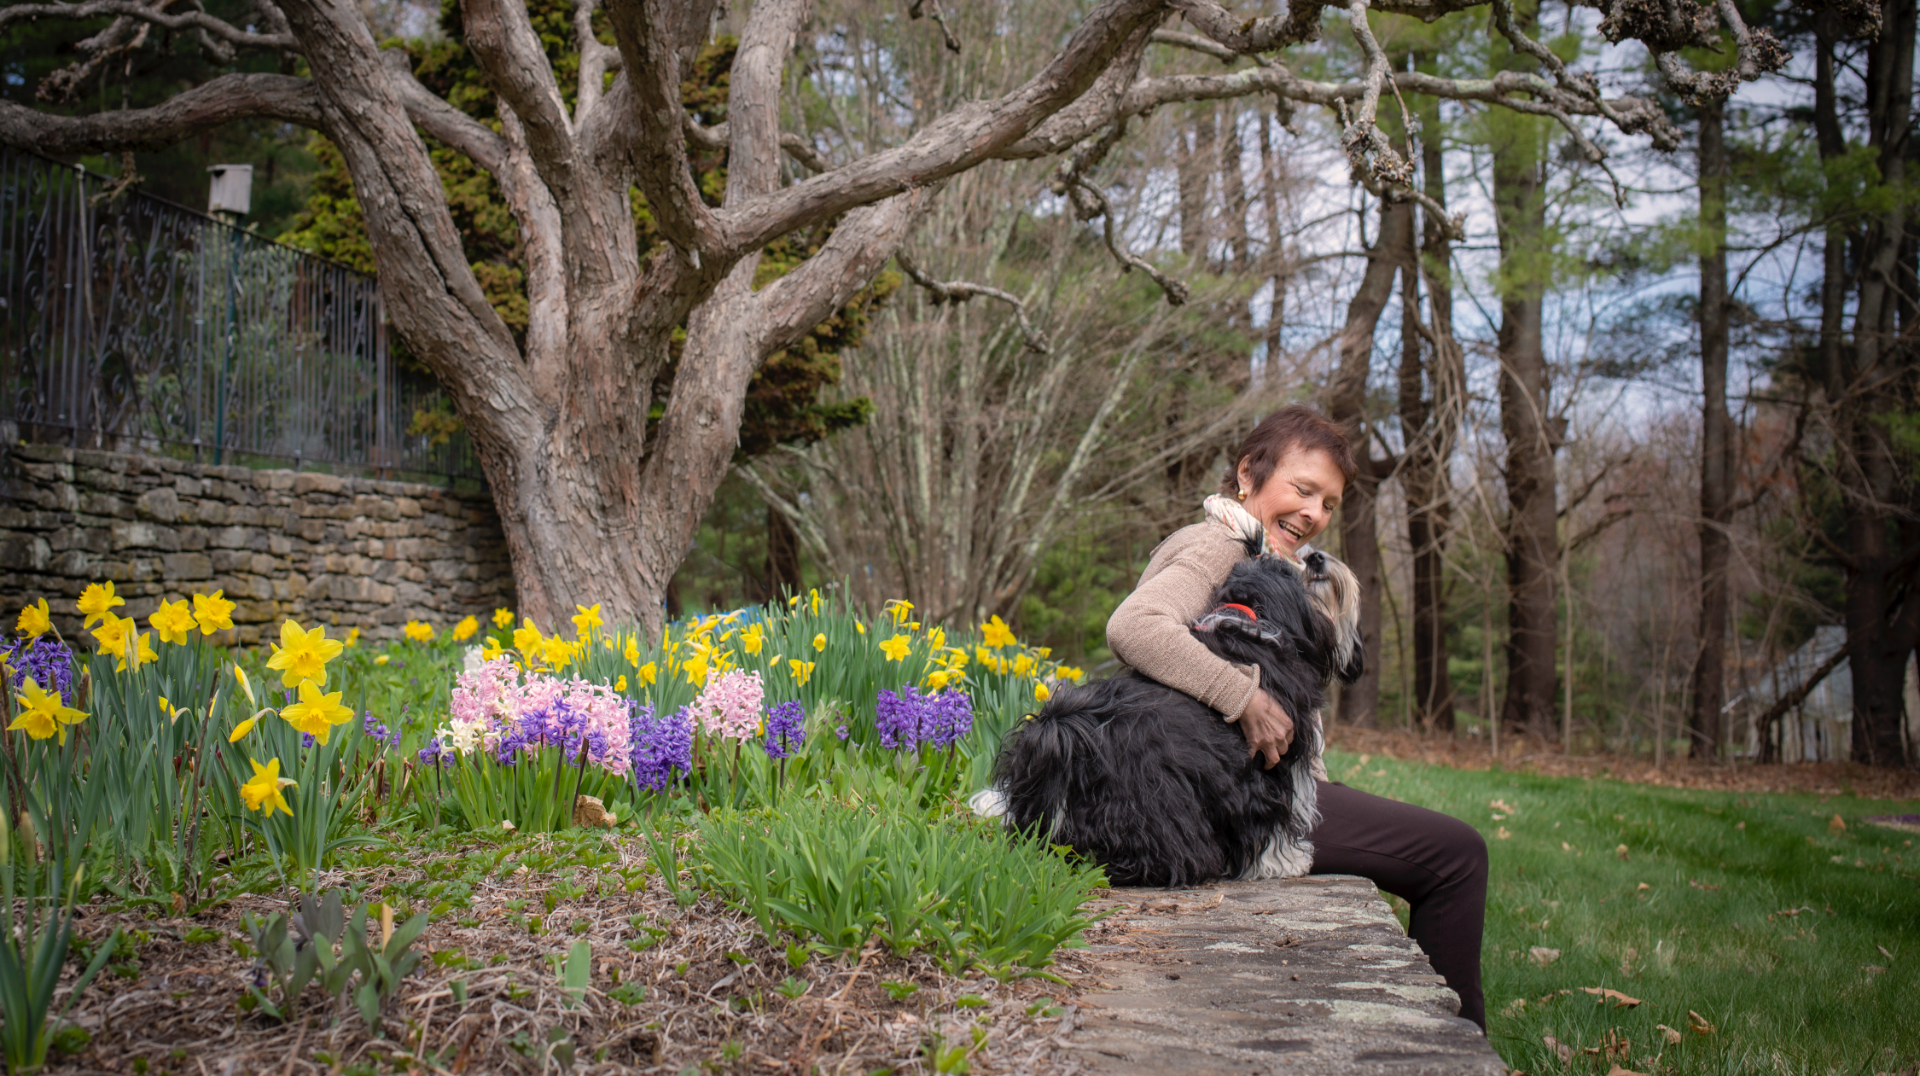 Dr. Irwin sits on a small stone wall and laughs as her Tibetan Terriers cuddle up to her, with her arms around them, one dog on each side of her.